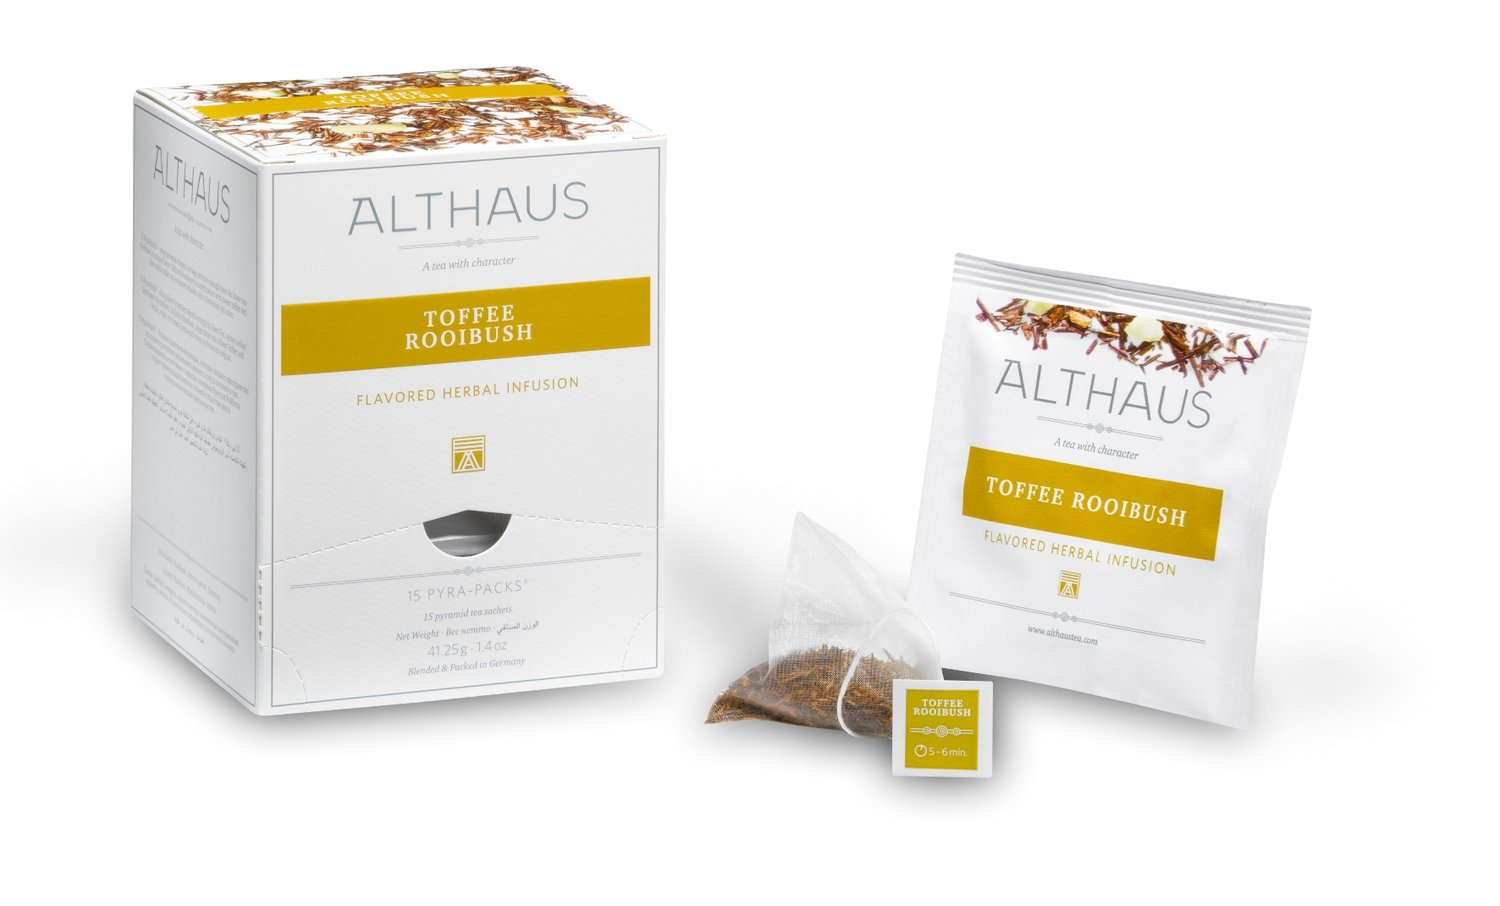 Althaus Pyra Pack Toffee Rooibush